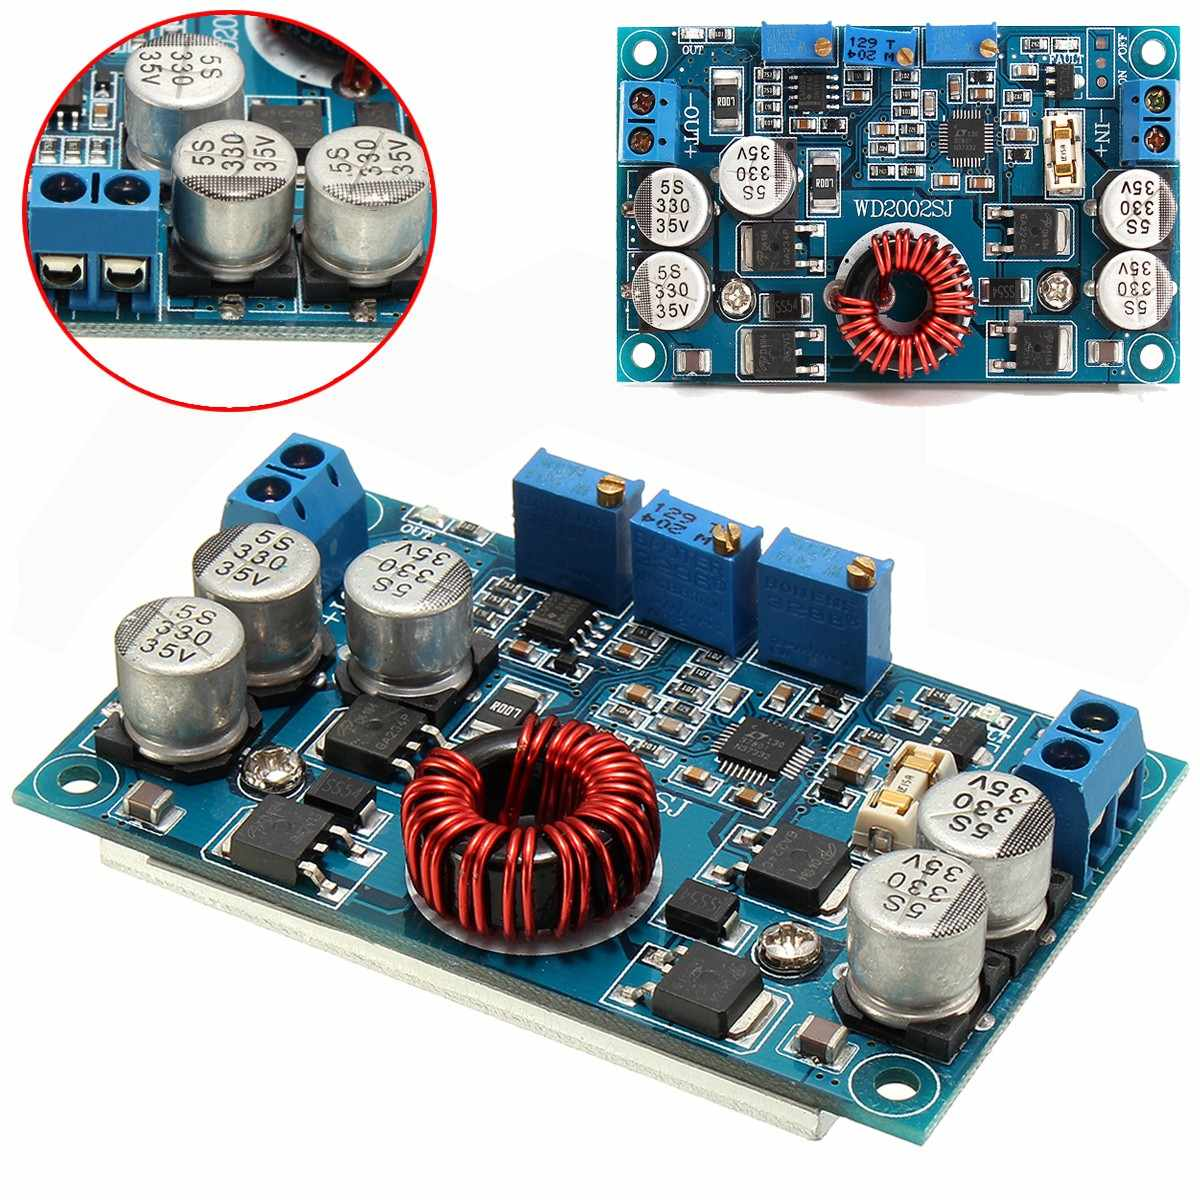 1PC New LTC3780 DC 5V~32V to 1V~30V 10A Automatic Step-Down Regulator Charging Module 77.6 x 46.5 x 15mm Board Module1PC New LTC3780 DC 5V~32V to 1V~30V 10A Automatic Step-Down Regulator Charging Module 77.6 x 46.5 x 15mm Board Module